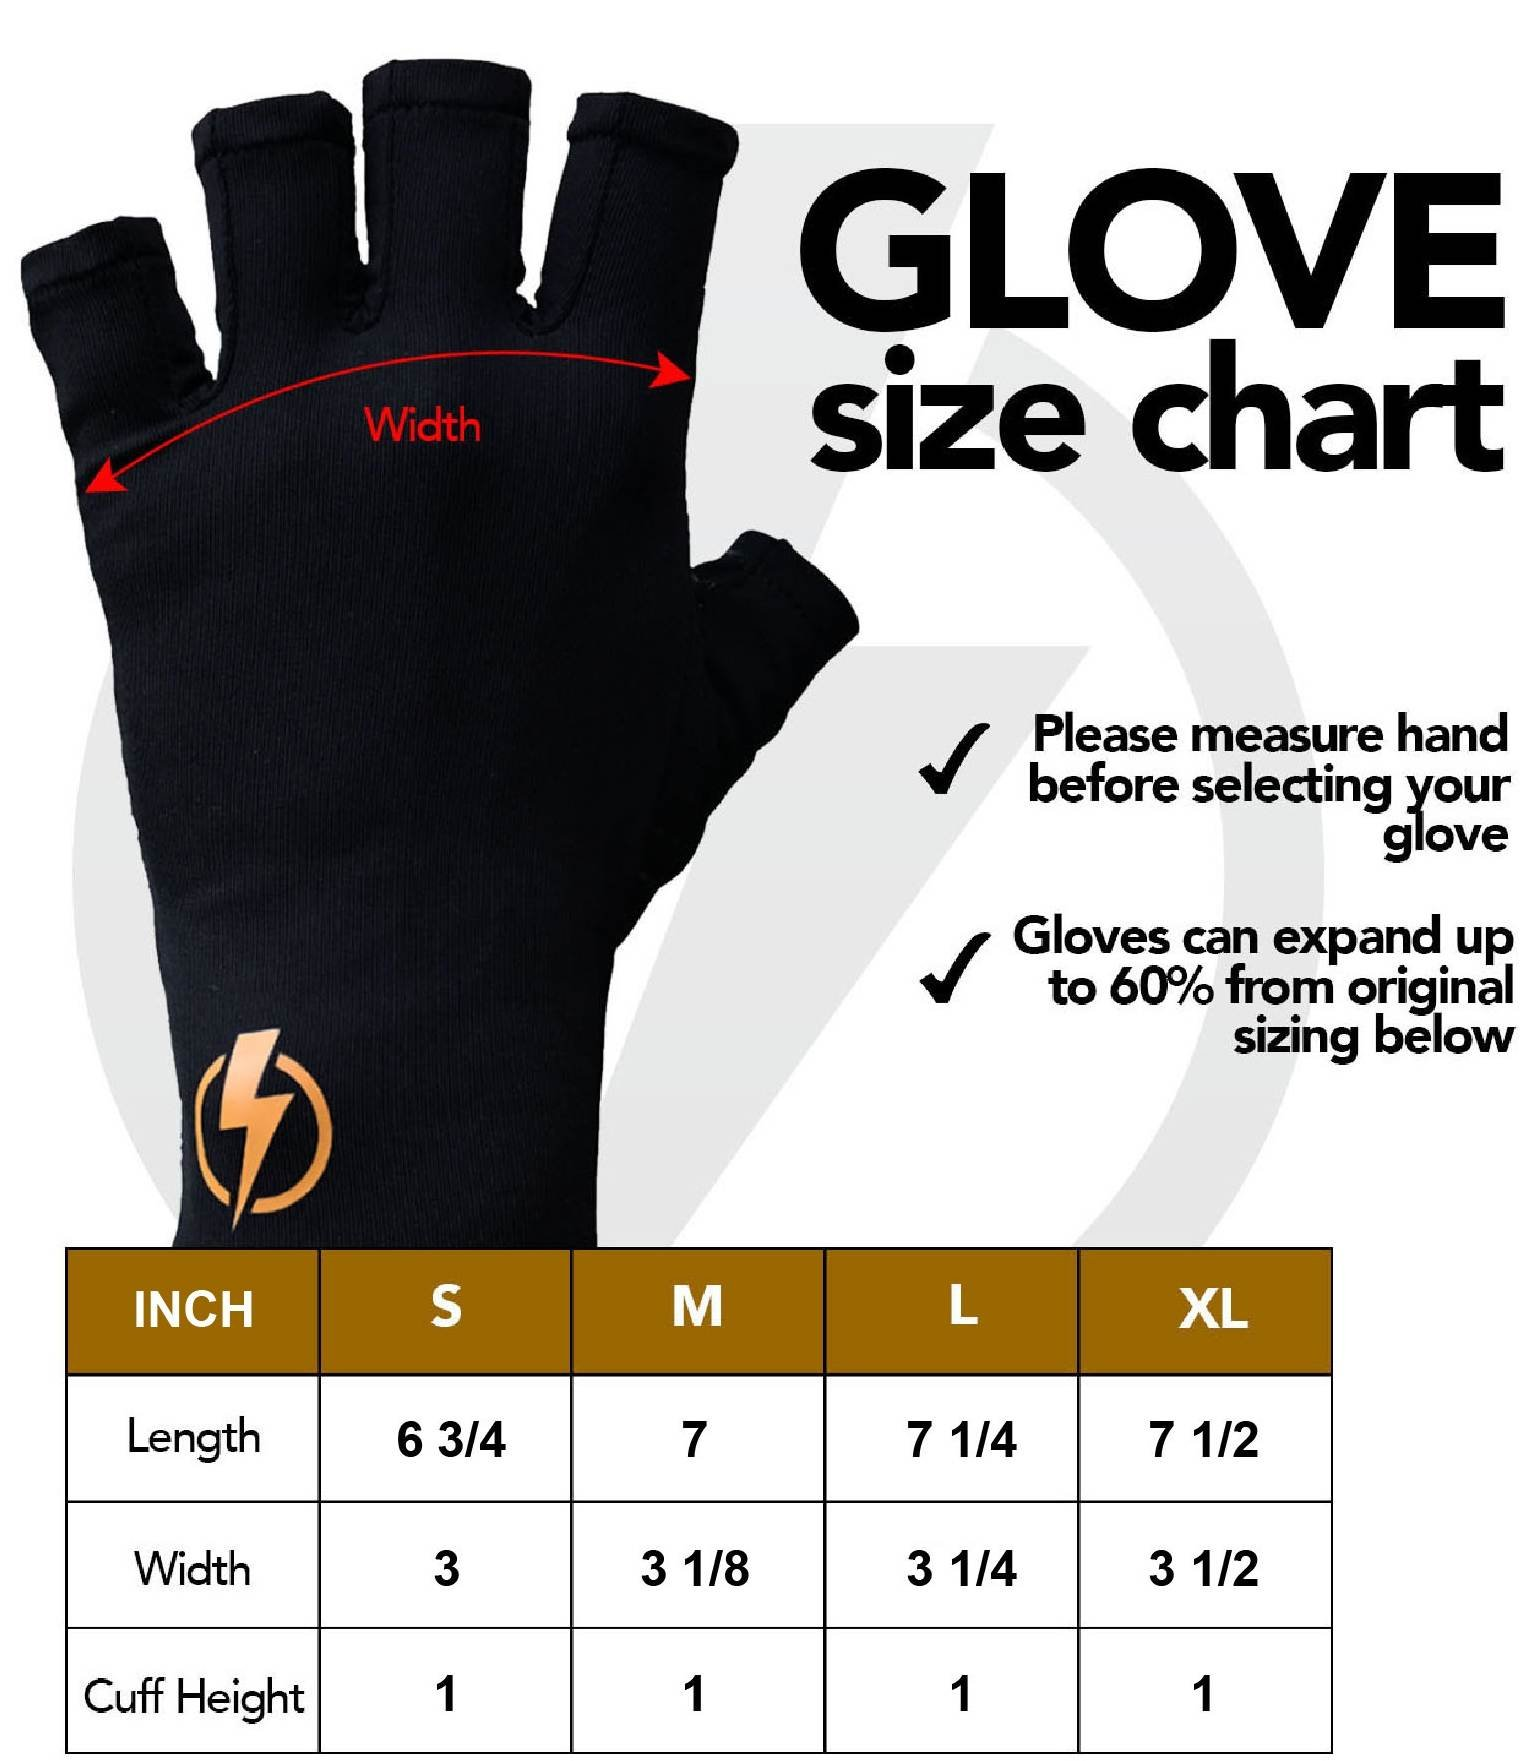 Copper Infused Compression Fingerless Arthritis Gloves Help Relieve Pain in Your Fingers Hand and Wrist | Improve Mobility and Circulation and Resume Normal Activities | by Copperstrike - 1 Pair Small